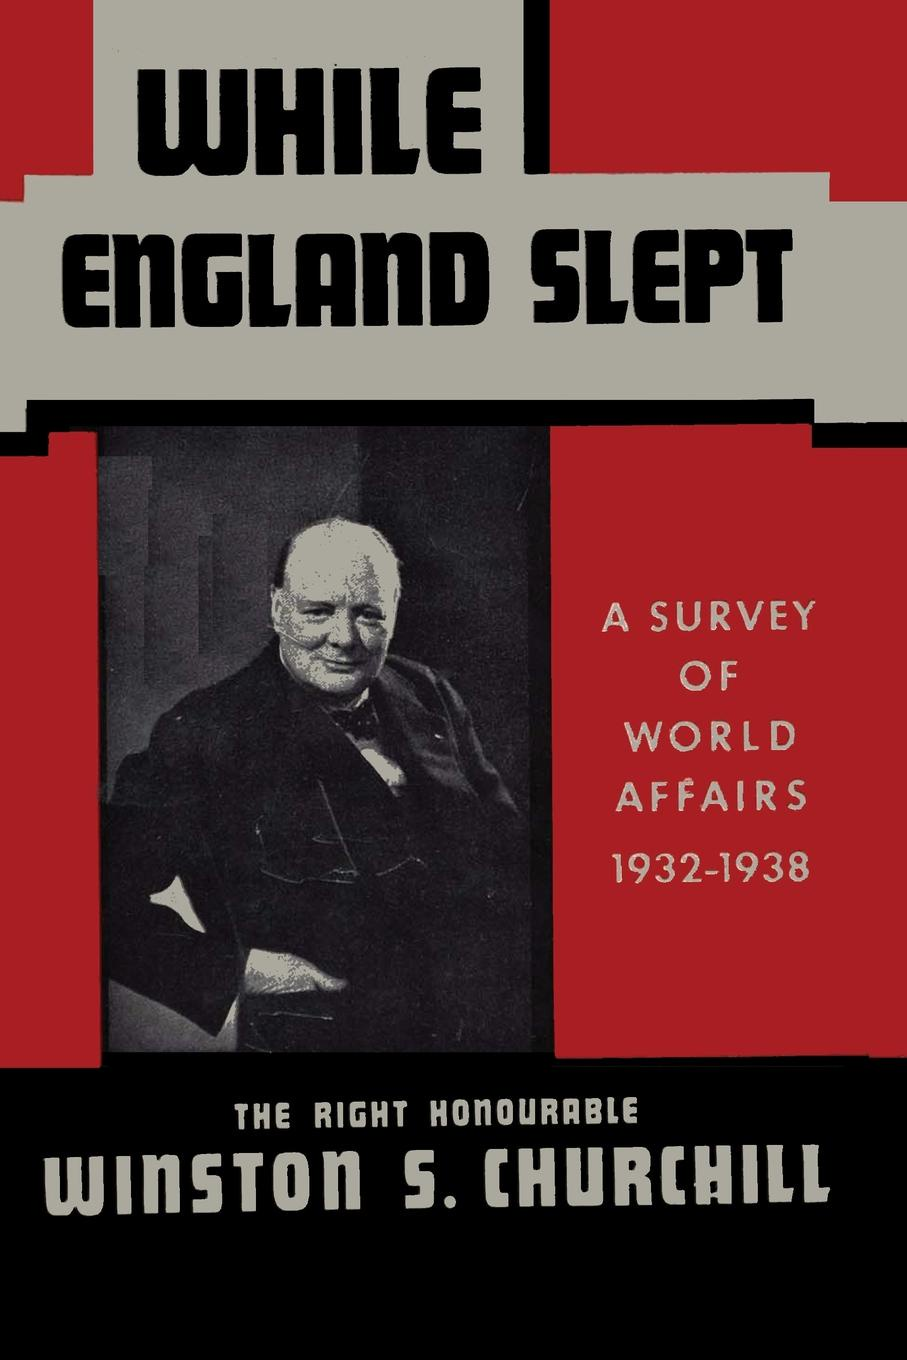 Winston S Churchill While England Slept by Winston Churchill. A Survey of World Affairs 1932-1938 winston churchill s war leadership